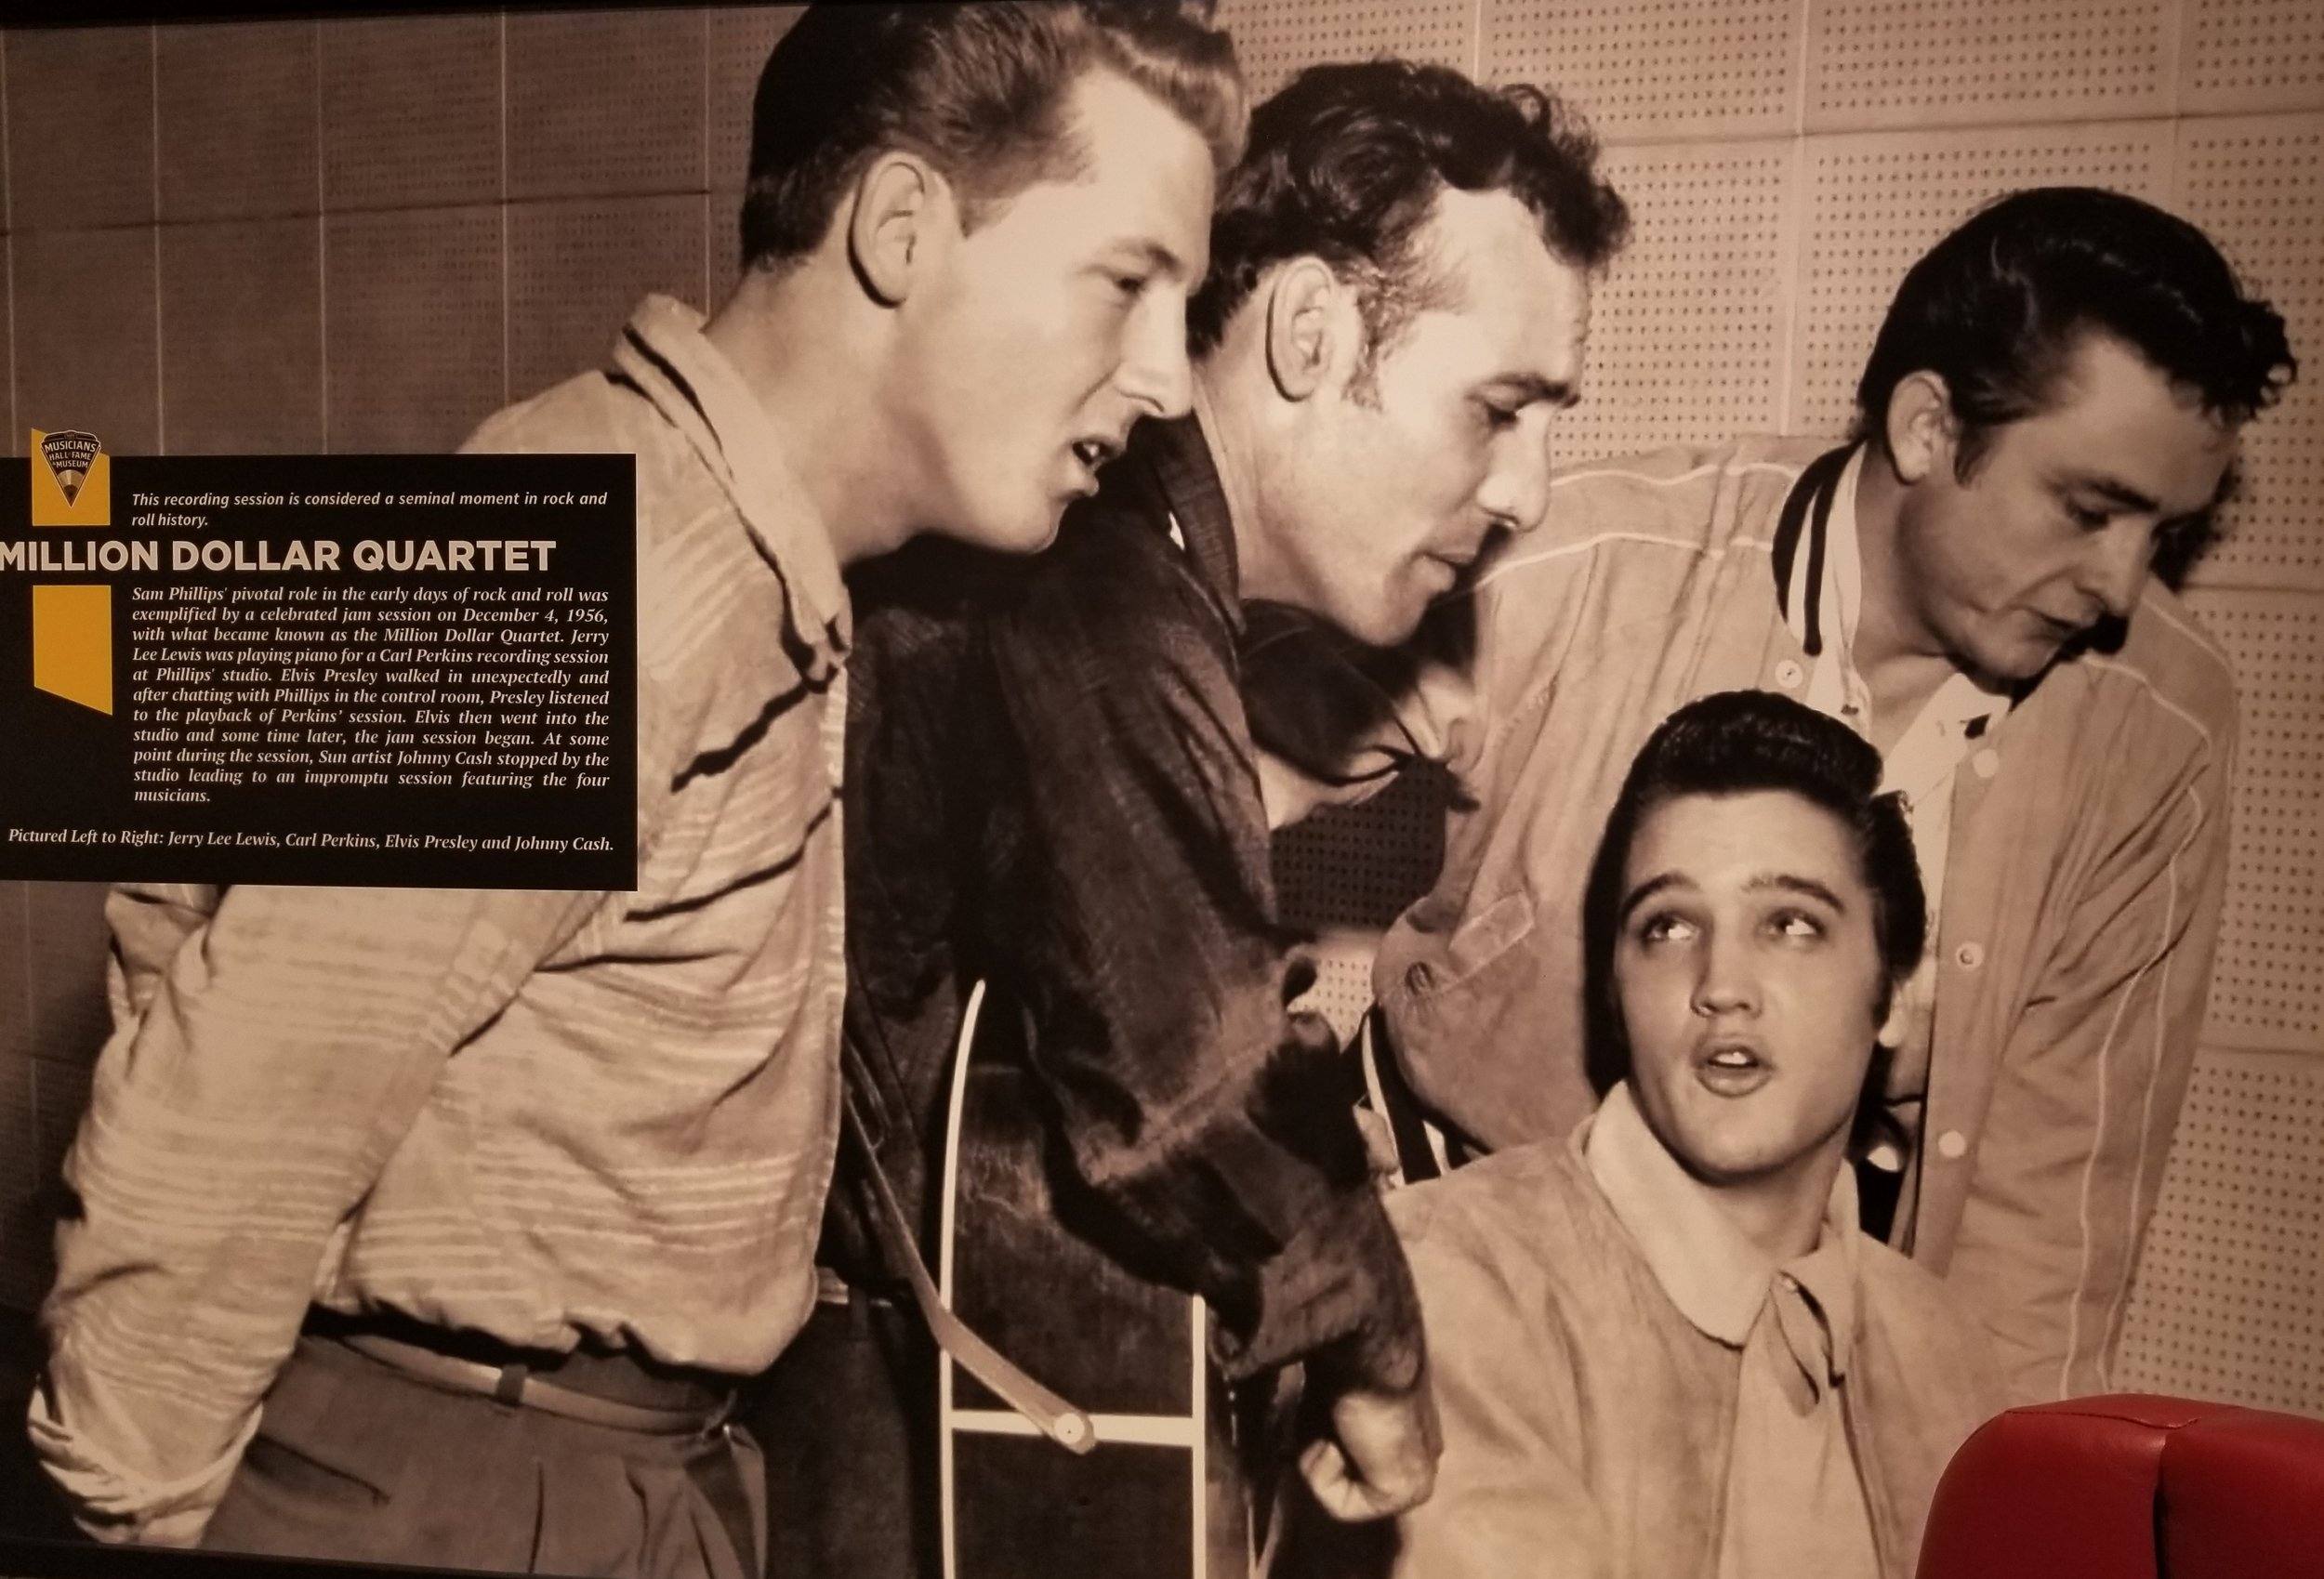 """""""This recording session is considered a seminal moment in rock and roll history… Jerry Lee Lewis was playing piano for a Carl Perkins recording session at Phillips' studio. Elvis Presley walked in unexpectedly and after chatting with Phillips in the control room, Presley listened to the playback of Perkins' session. Elvis then went into the studio and some time later, the jam session began. At some point during the session, Sun artist Johnny Cash stopped by the studio leading to an impromptu session featuring the four musicians"""" Left to Right: Jerry Lew Lewis, Carl Perkins, Elvis Presley and Johnny Cash"""